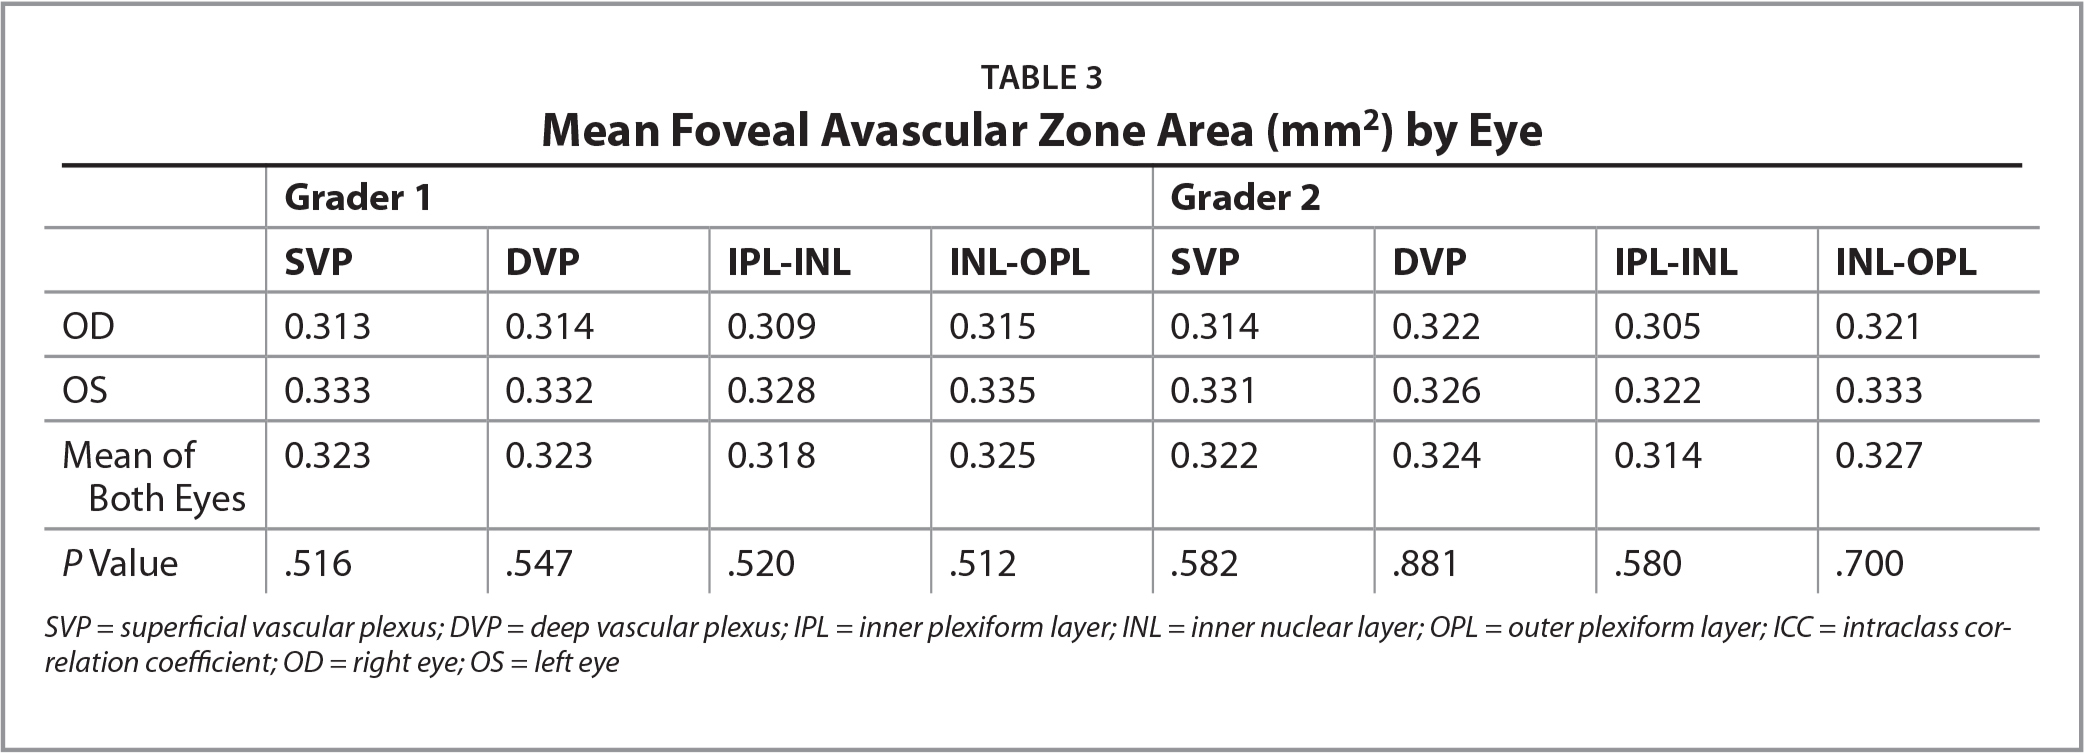 Mean Foveal Avascular Zone Area (mm2) by Eye